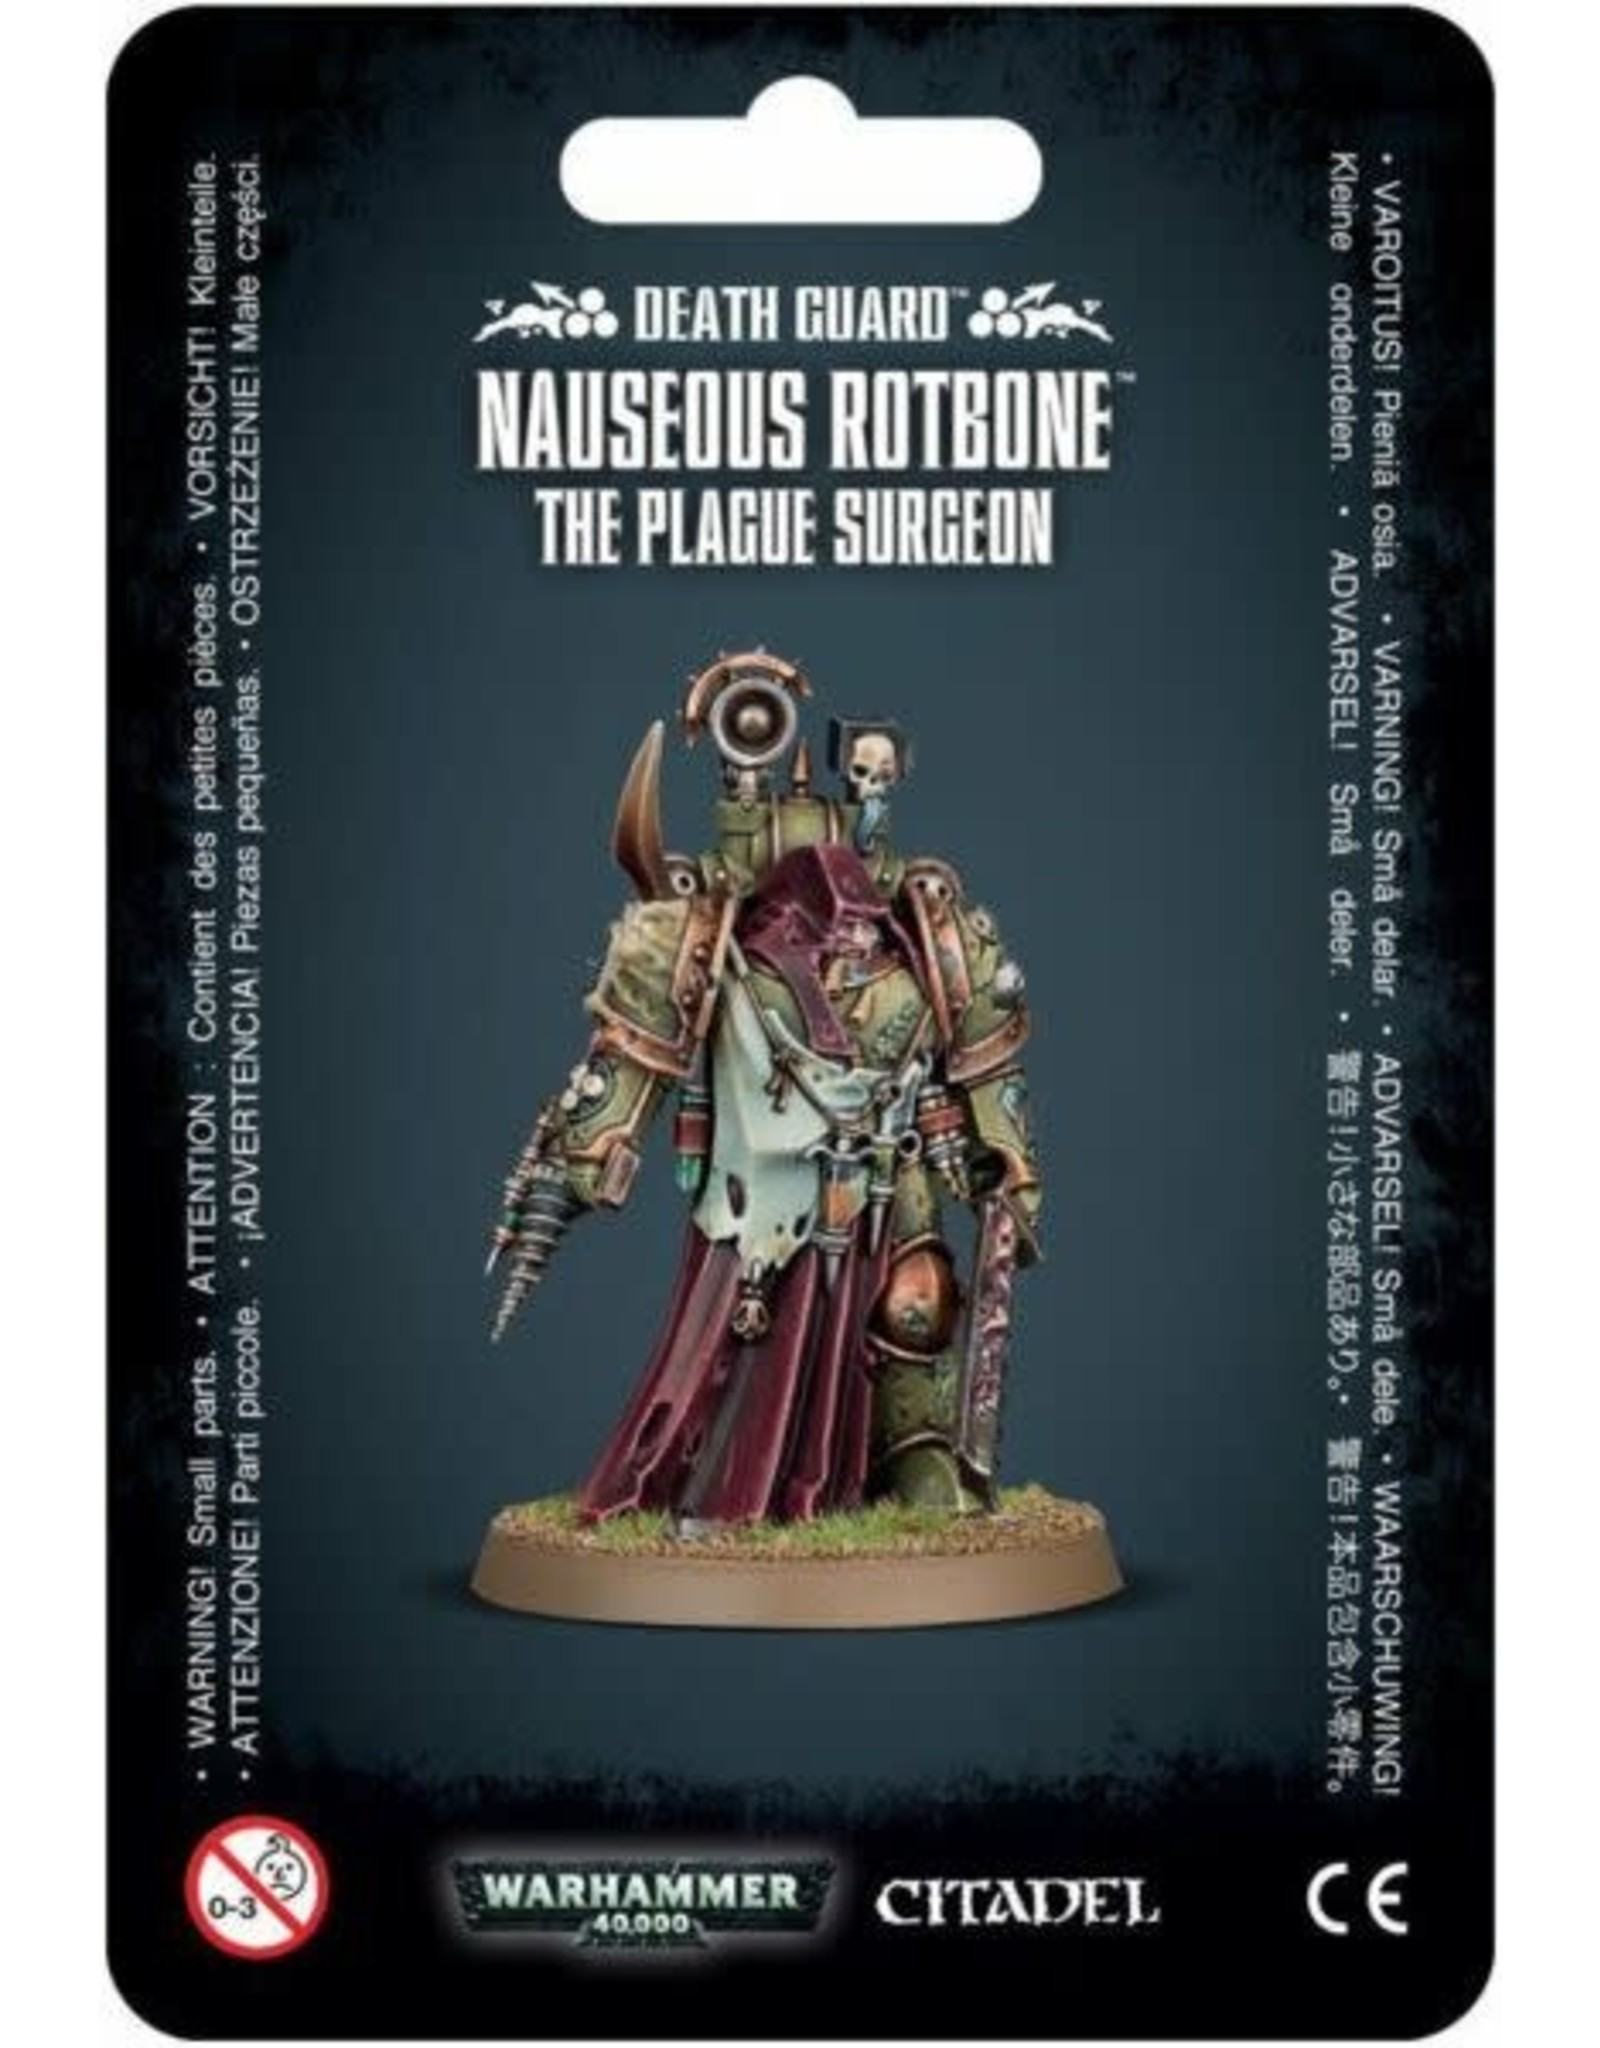 Warhammer 40,000 Death Guard: Nauseous Rotbone the Plague Surgeon